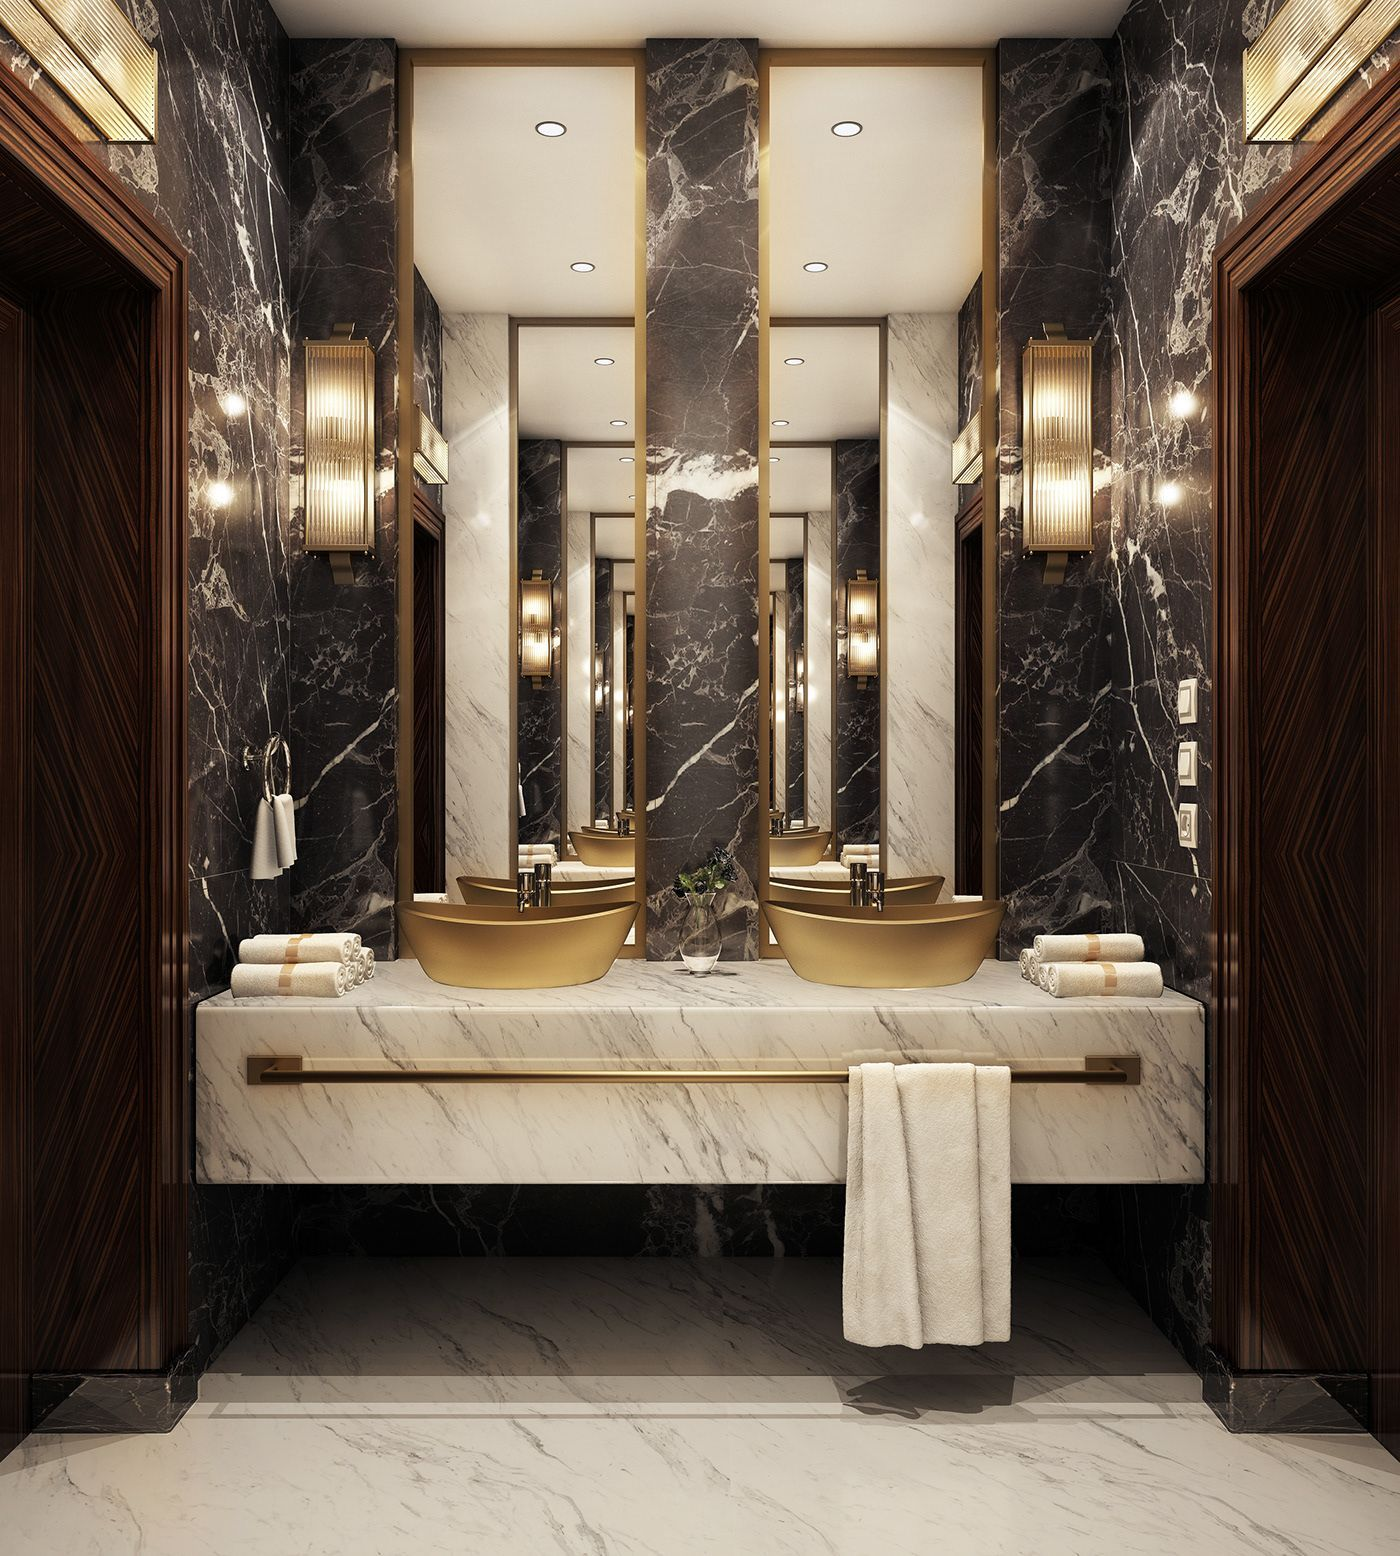 How To Design Bathroom Interiors With Personality Modern Luxury